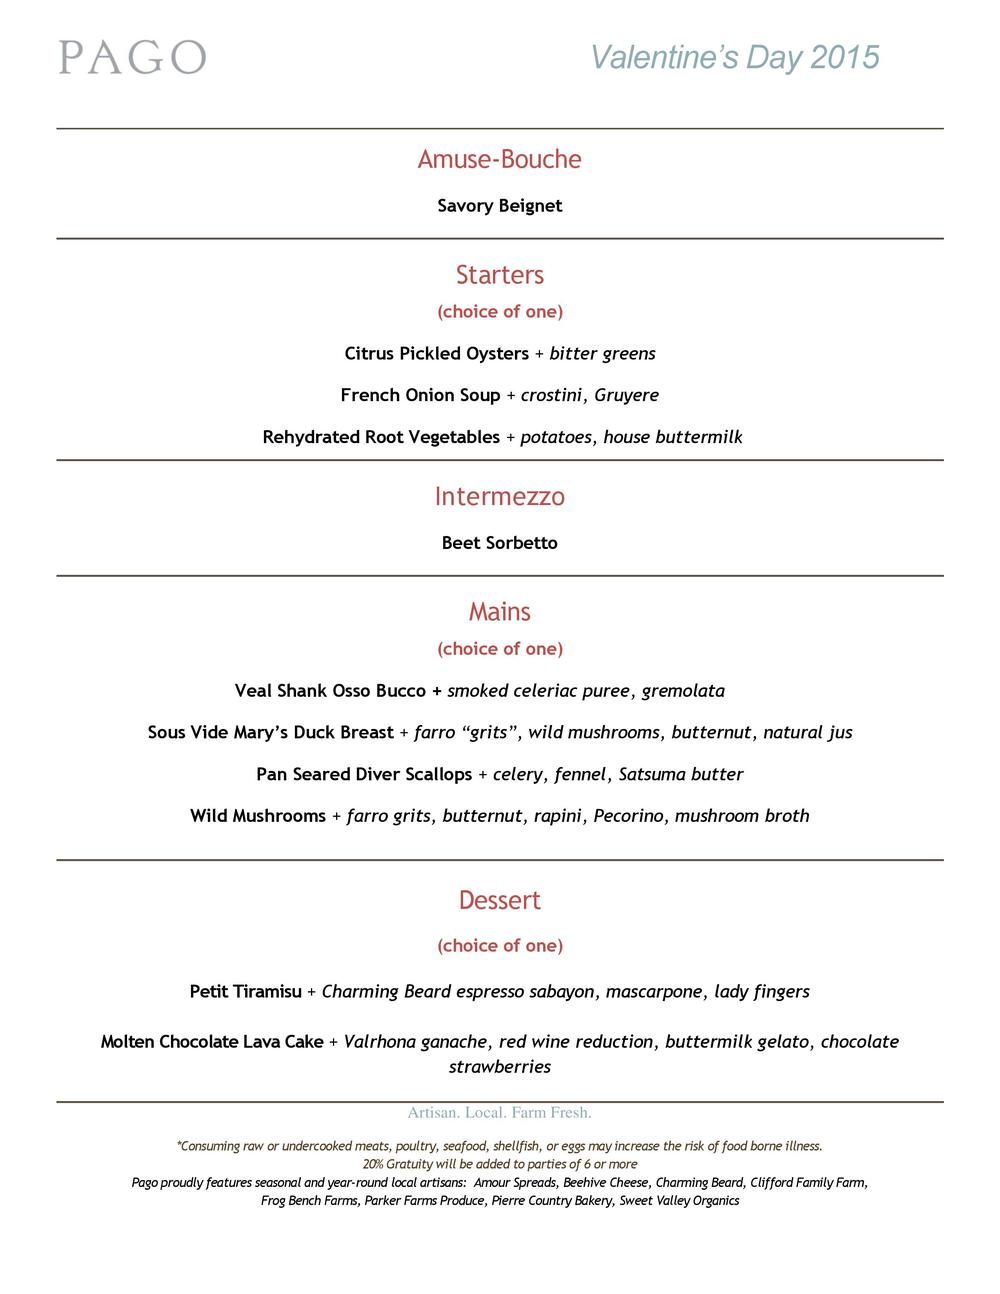 Pago Valentine's Day Menu 2015